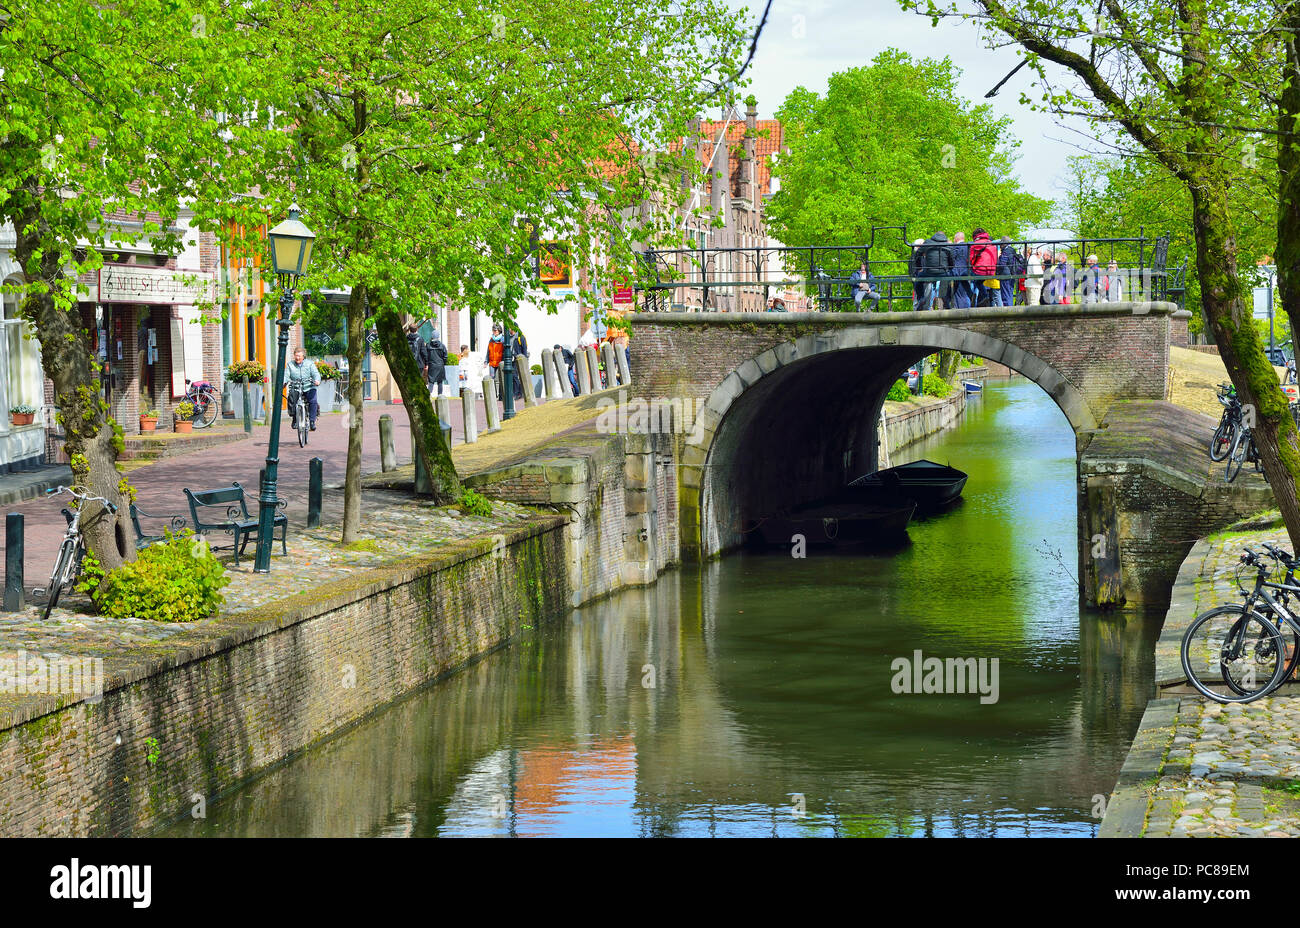 Centre of the Dutch town of Edam in spring a tourist destination in North Holland, The Netherlands - Stock Image